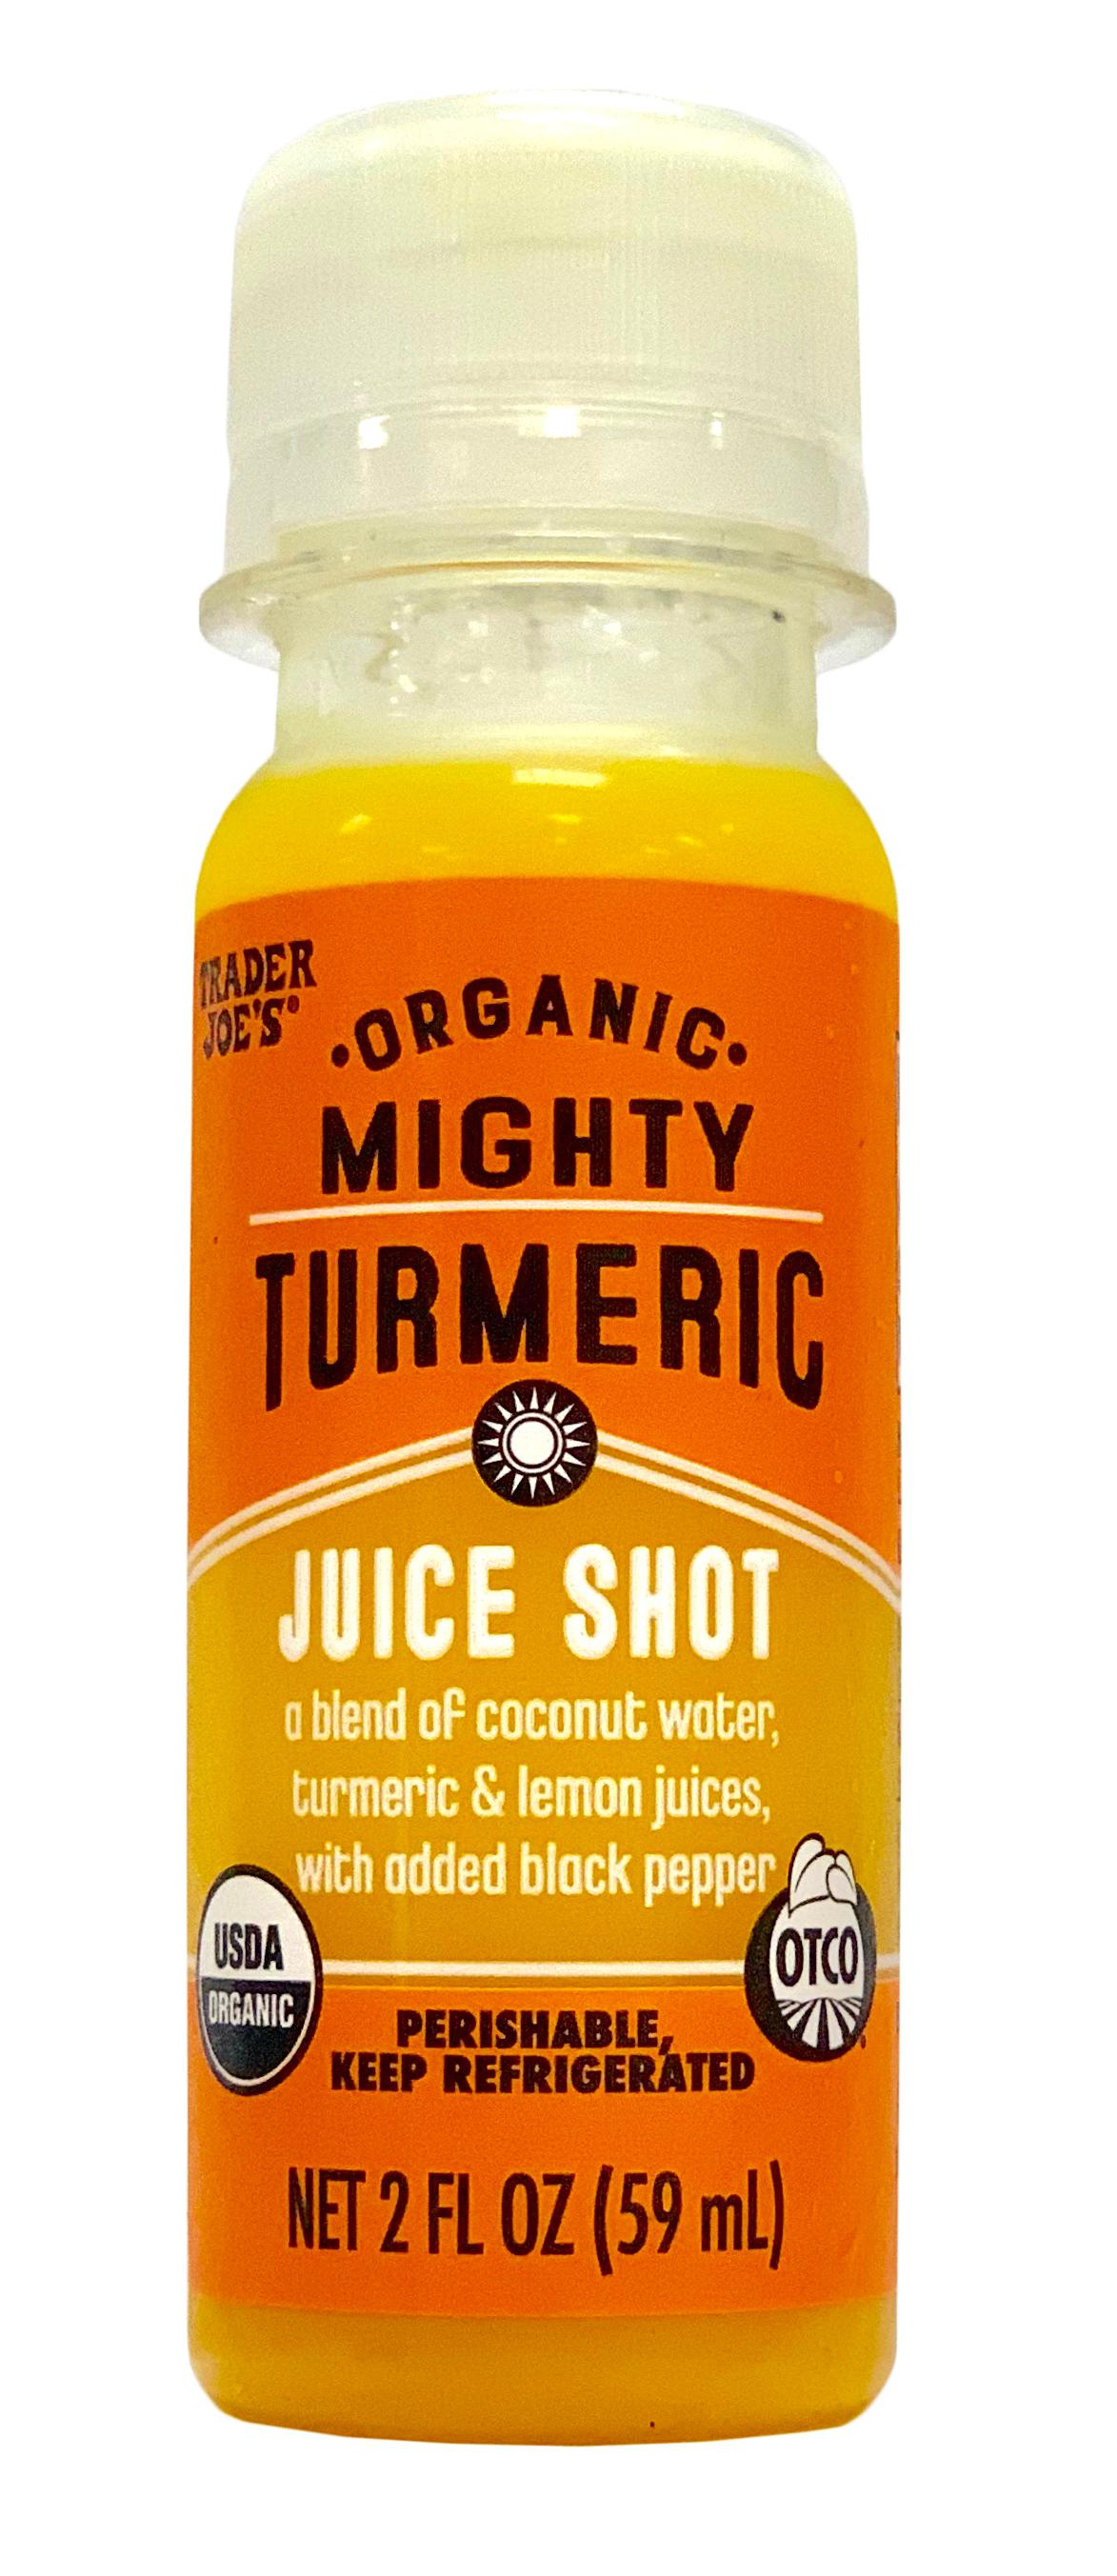 "Organic Mighty Turmeric Juice Shot. Instead of reaching for a second cup of coffee why not rally with a juice shot? Turmeric is so good for you! Find these in the refrigerated section for just $1.99!{ }On a monthly basis I rotate through three grocery stops - Costco, Walmart Pick-up, and Trader Joe's. And, you guessed it, Trader Joe's is my favorite. Do you love it too? I have classic staples there and am always finding new favorites. That's the joy things there follow the old adage ""Make new friends but keep the old"". How they smoosh so many amazing products into their few rows, I will never know, but I no doubt discover fabulous things ever time my red cart wanders through. (Image: Trader Joes)"